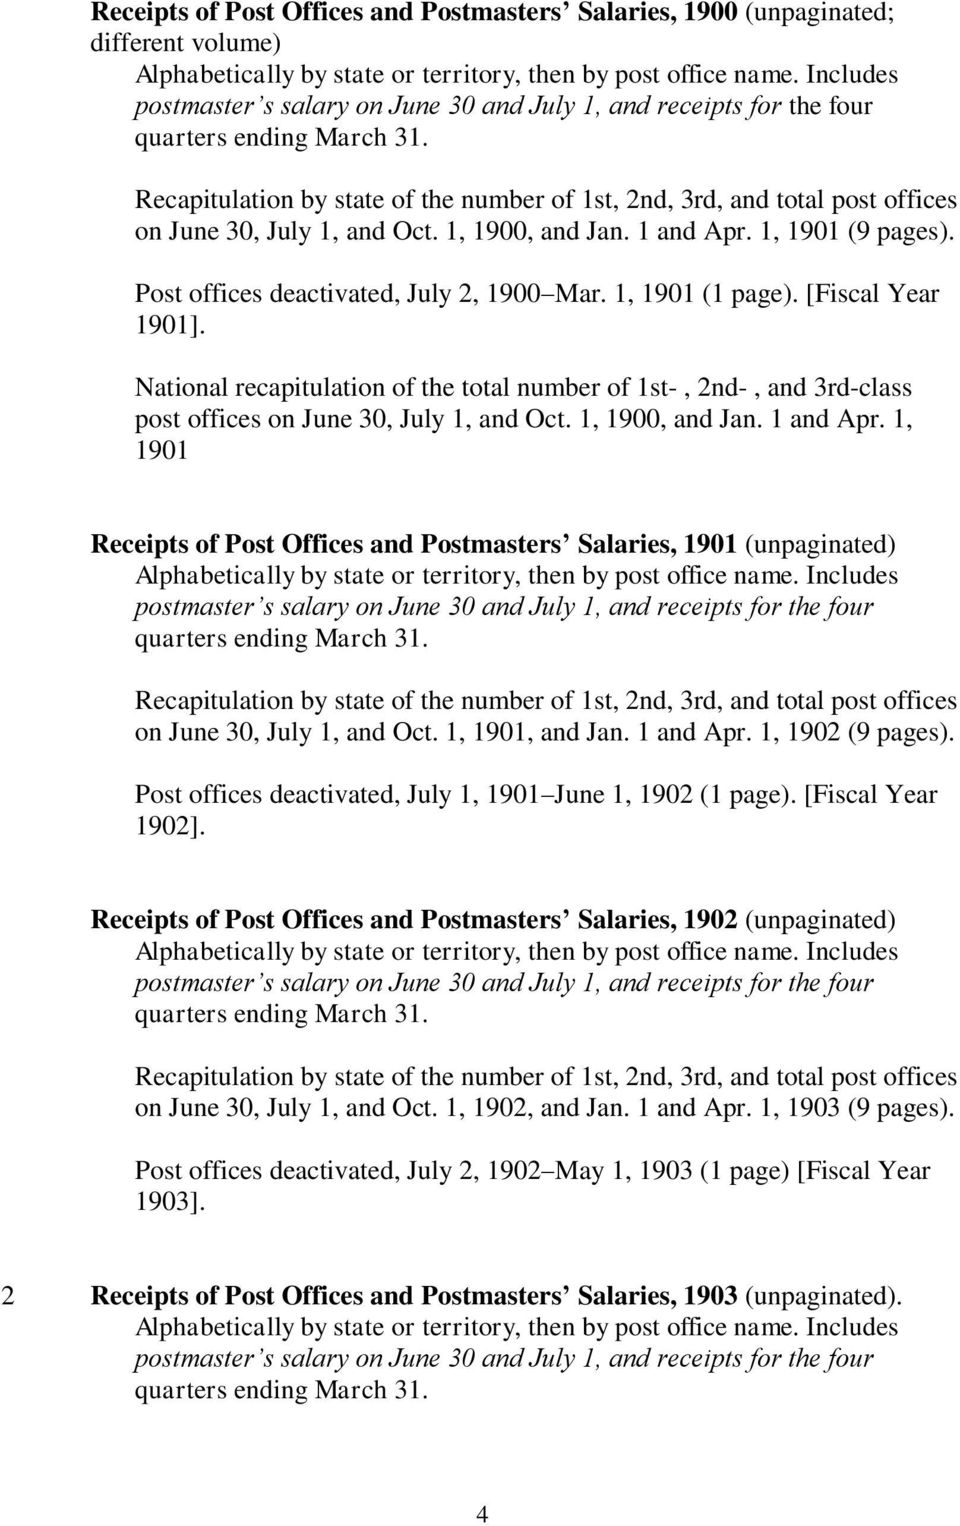 1, 1900, and Jan. 1 and Apr. 1, 1901 Receipts of Post Offices and Postmasters Salaries, 1901 (unpaginated) on June 30, July 1, and Oct. 1, 1901, and Jan. 1 and Apr. 1, 1902 (9 pages).